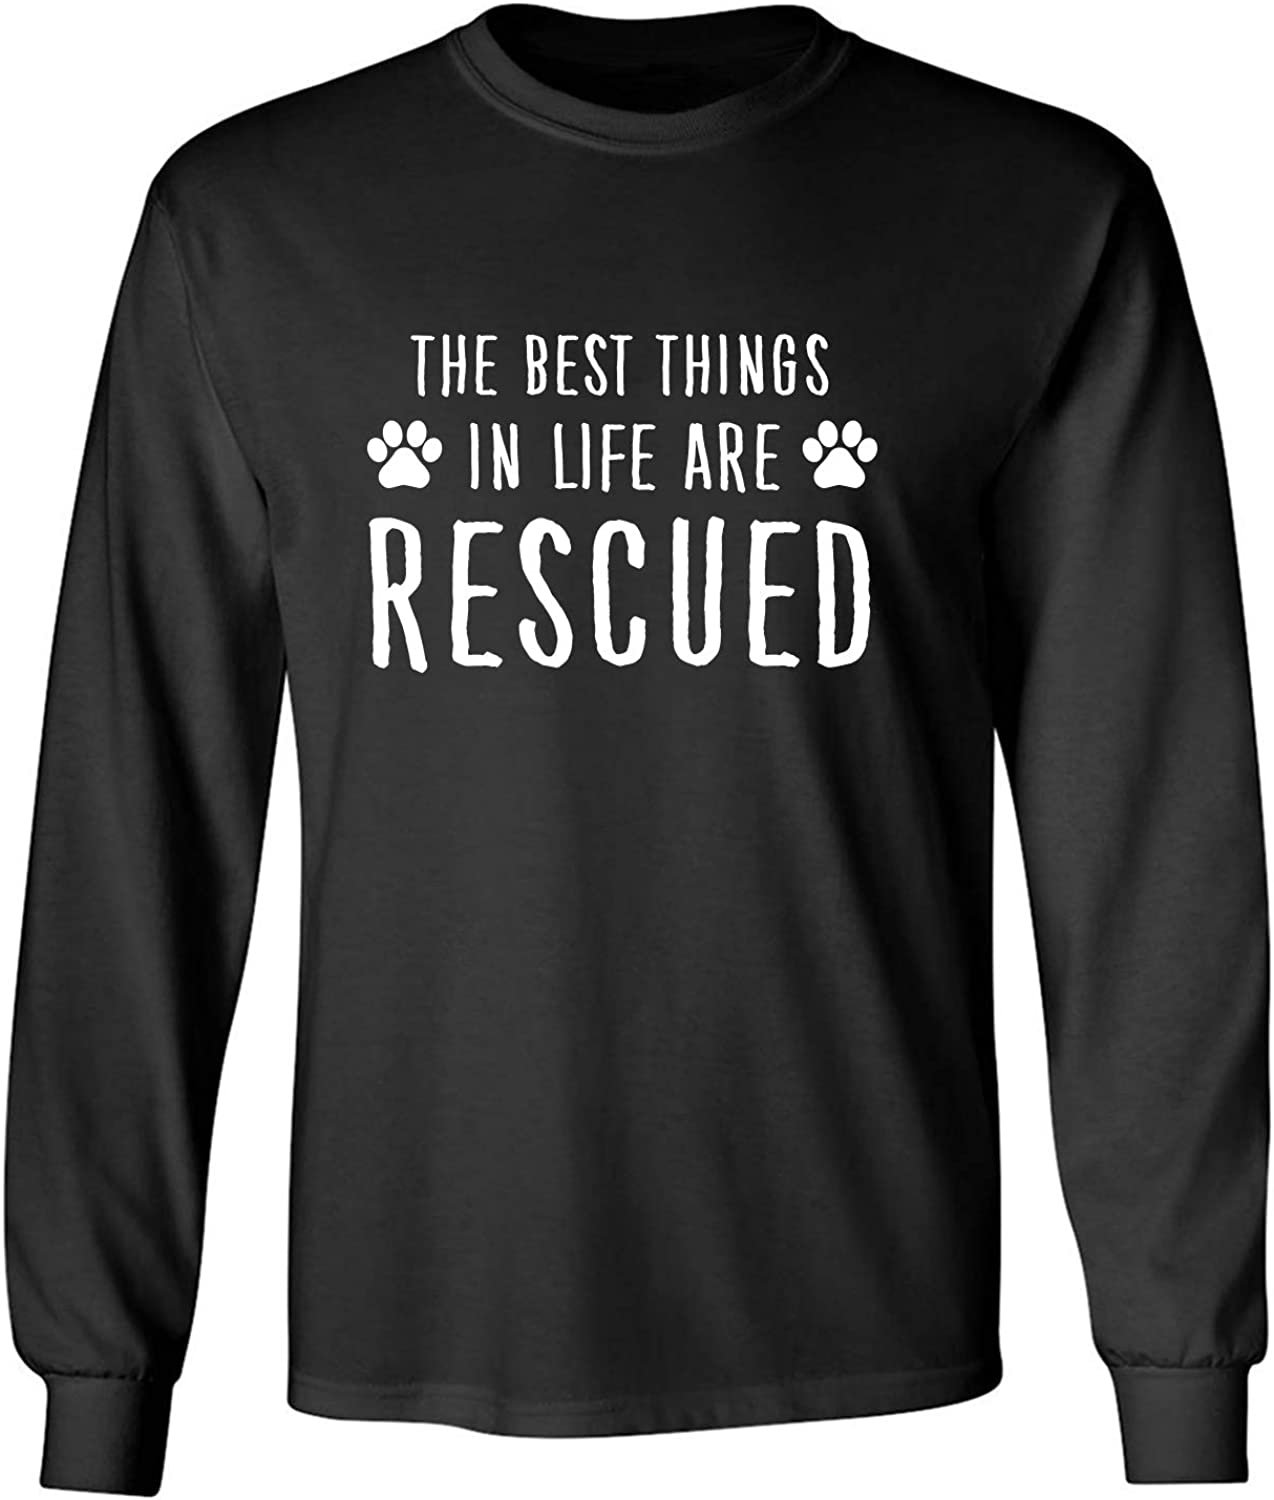 Best Things in Life are Rescued Adult Long Sleeve T-Shirt in Black - XXXXX-Large